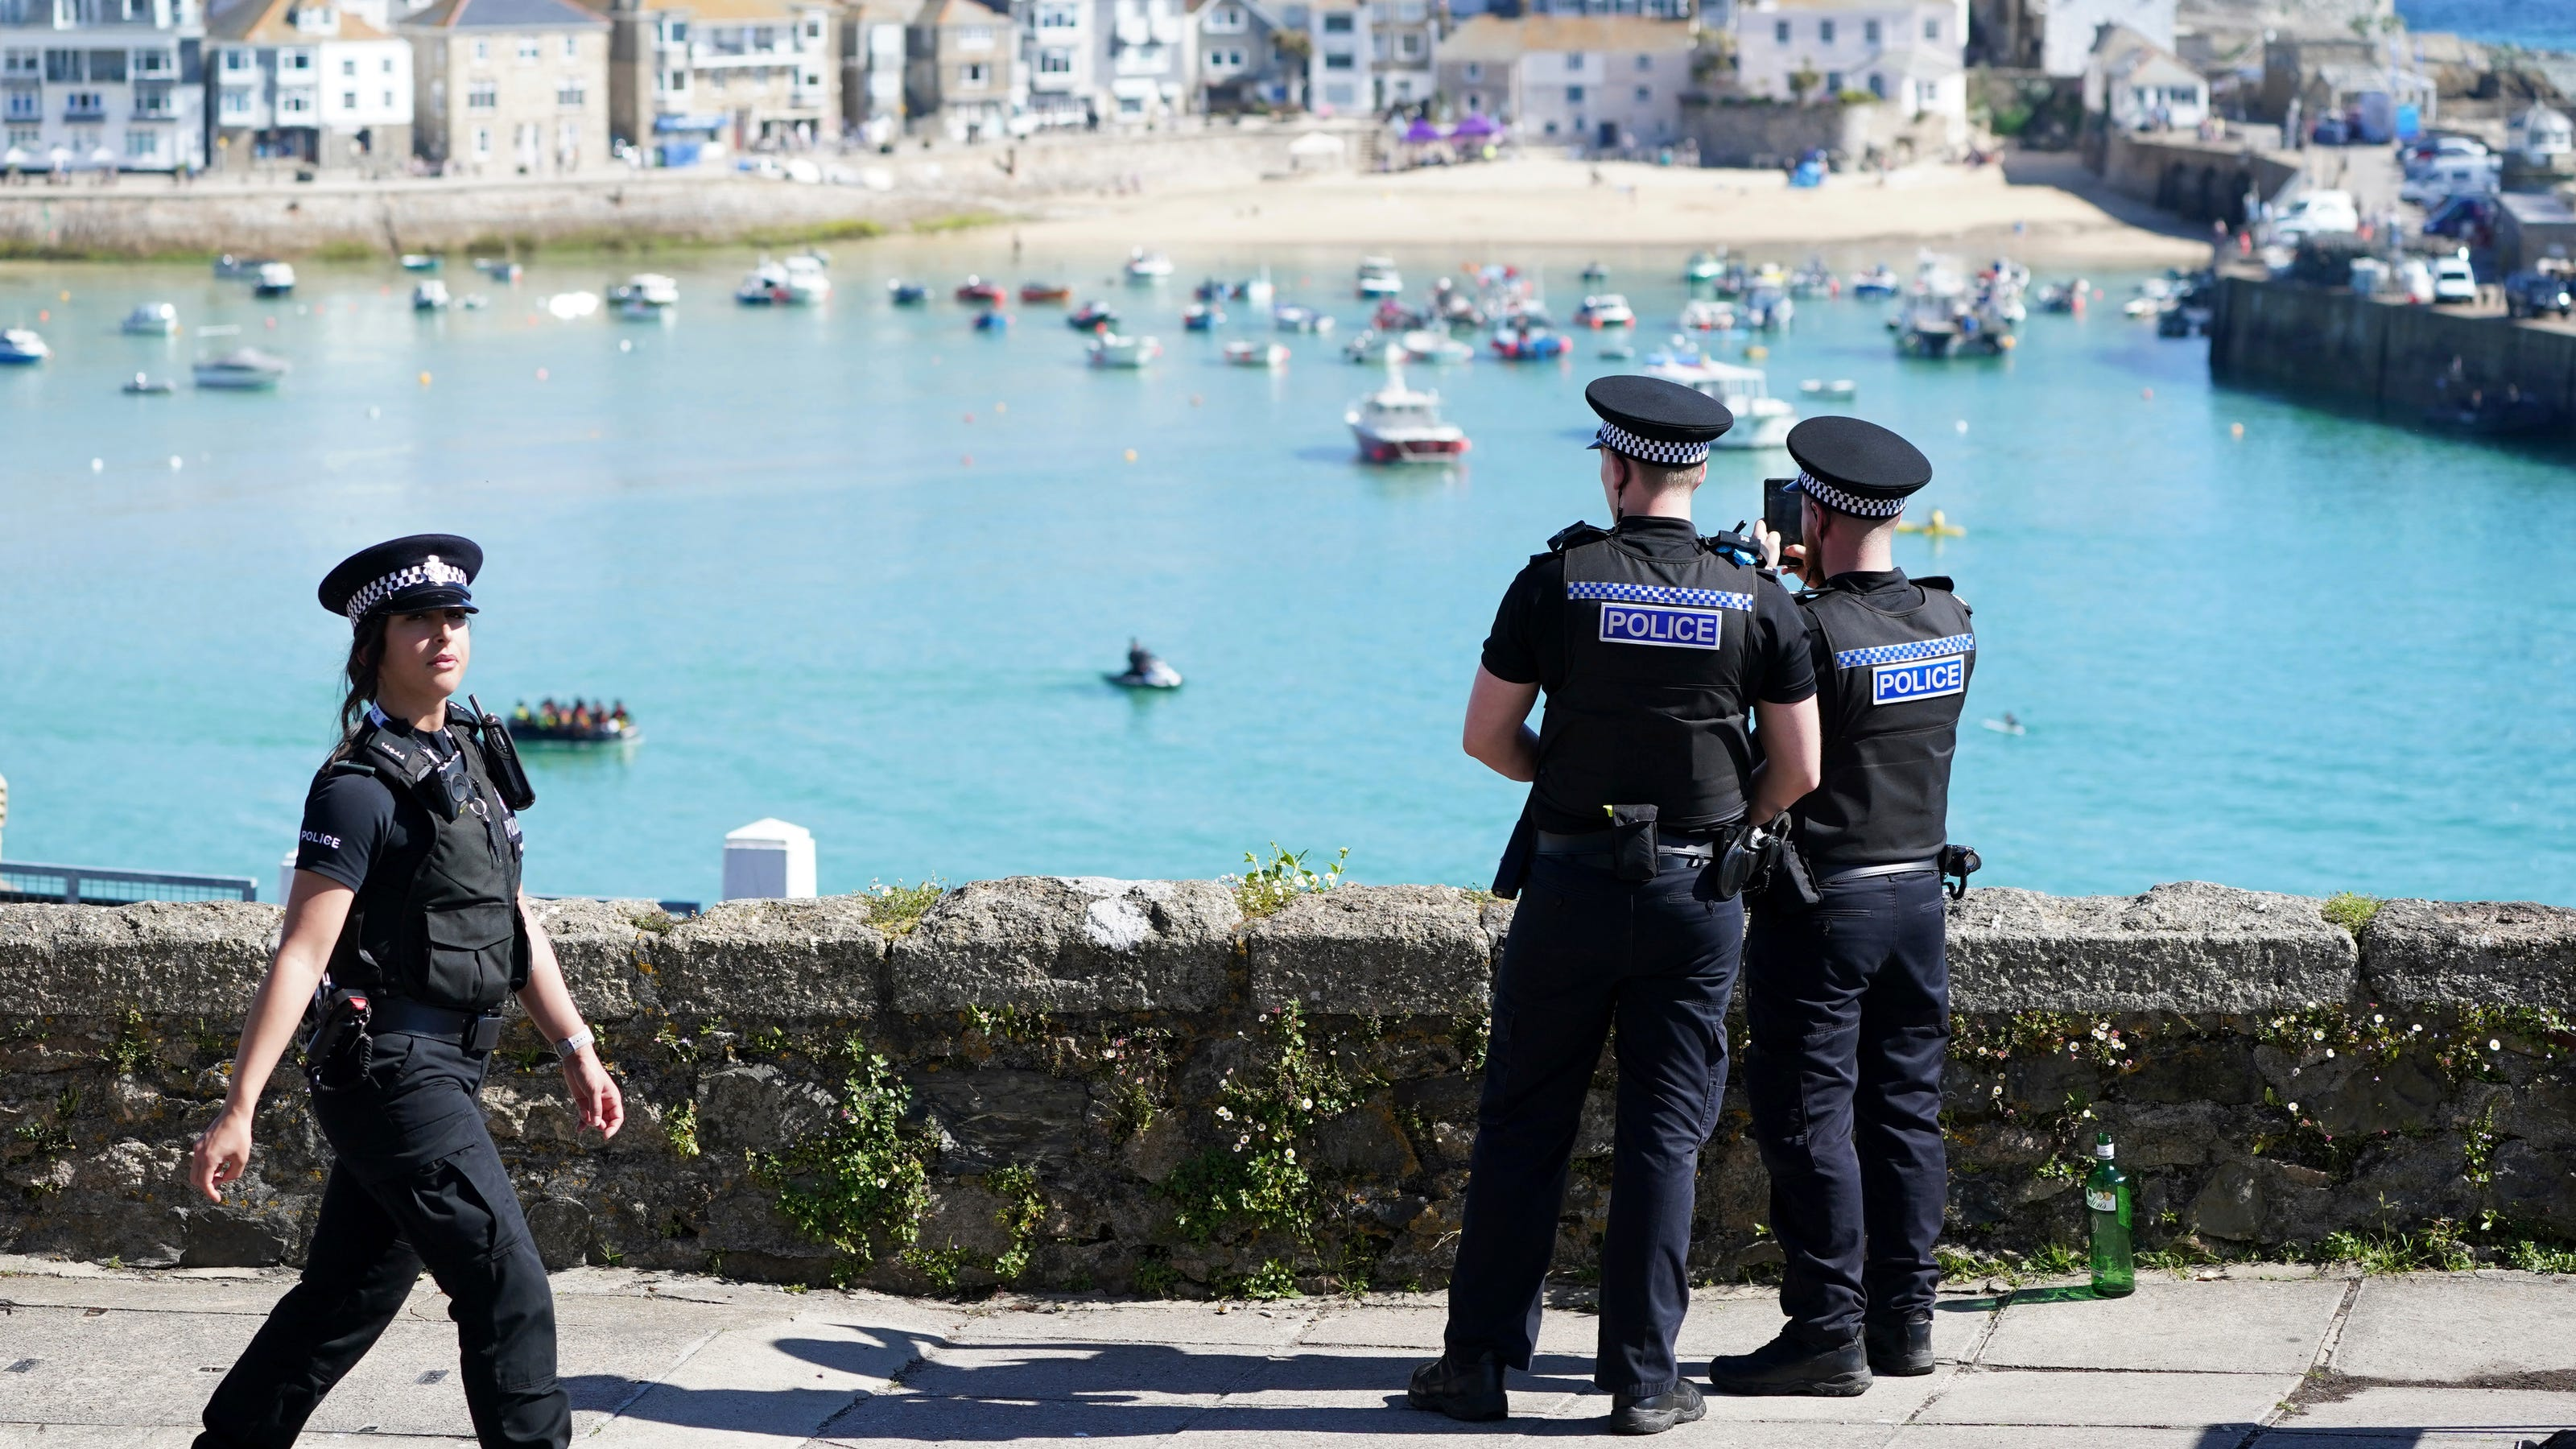 COVID-19 probe in China, less coal, 15% tax: What we learned from the G-7 summit in Cornwall